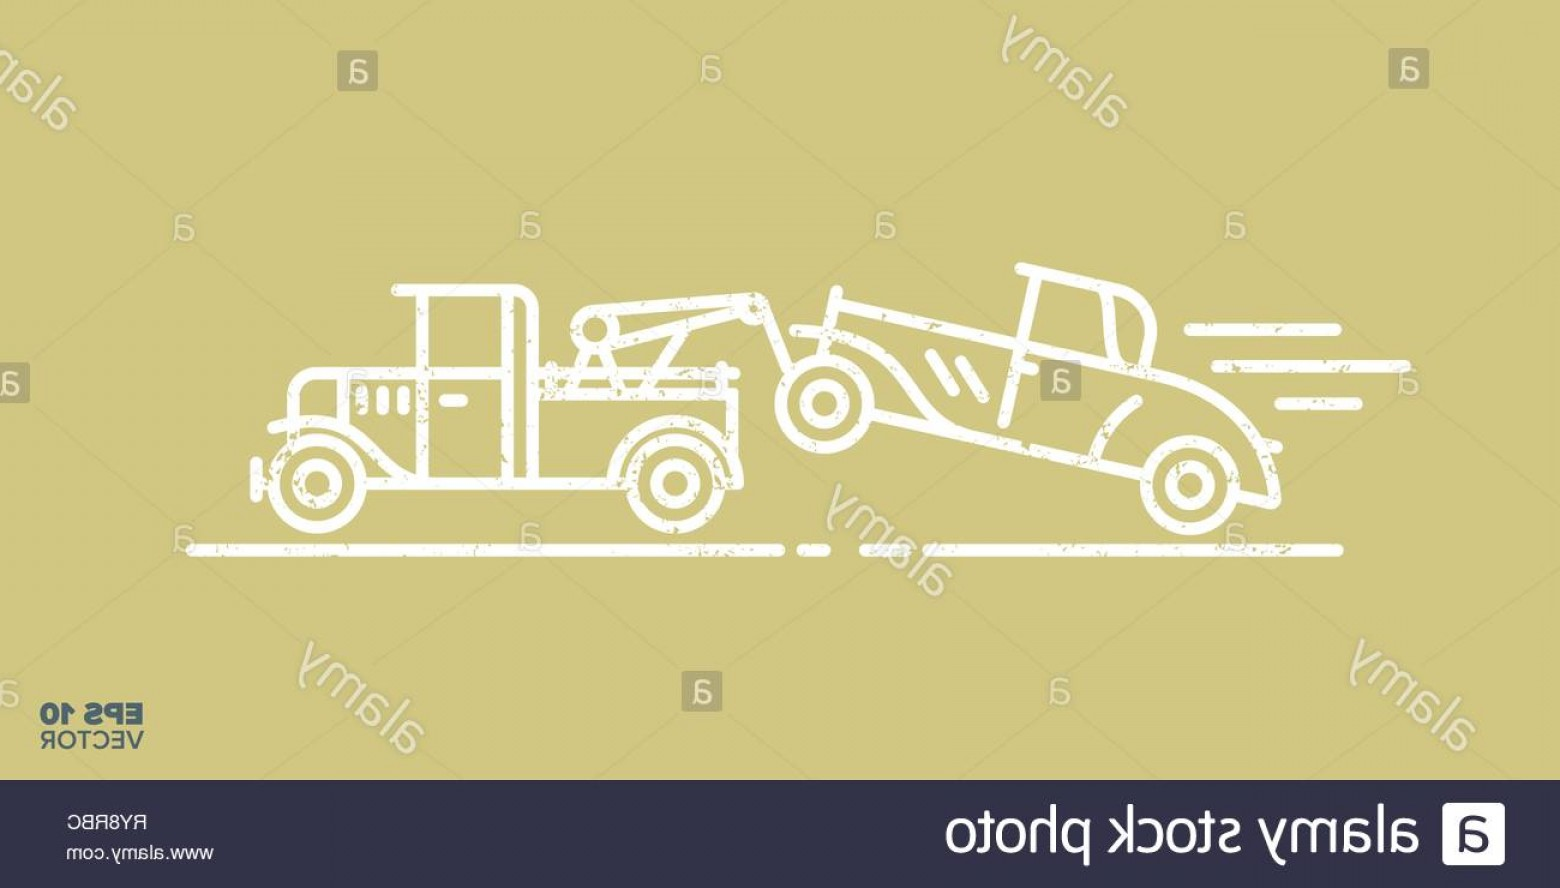 Towing Truck Hook Vector: Fast Tow Truck With Car On Hook Cartoon Icon Vector Illustration Image